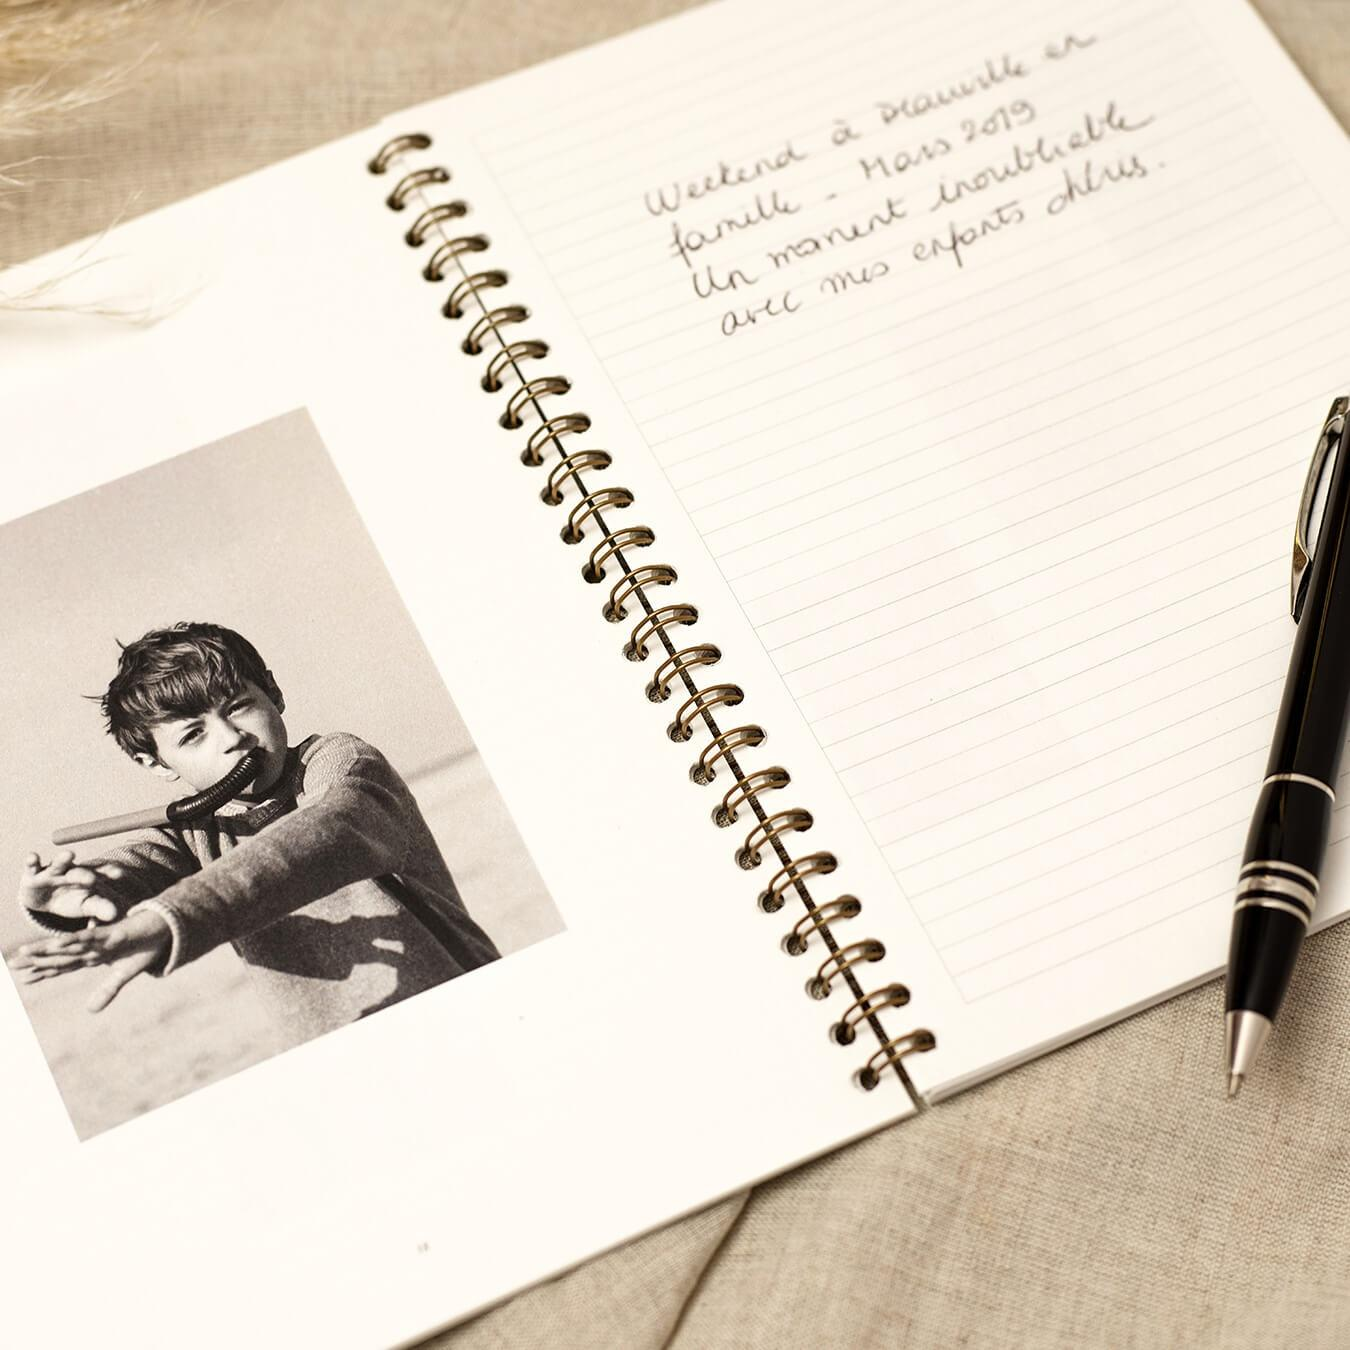 Innocence - Notebook - Customized photo album